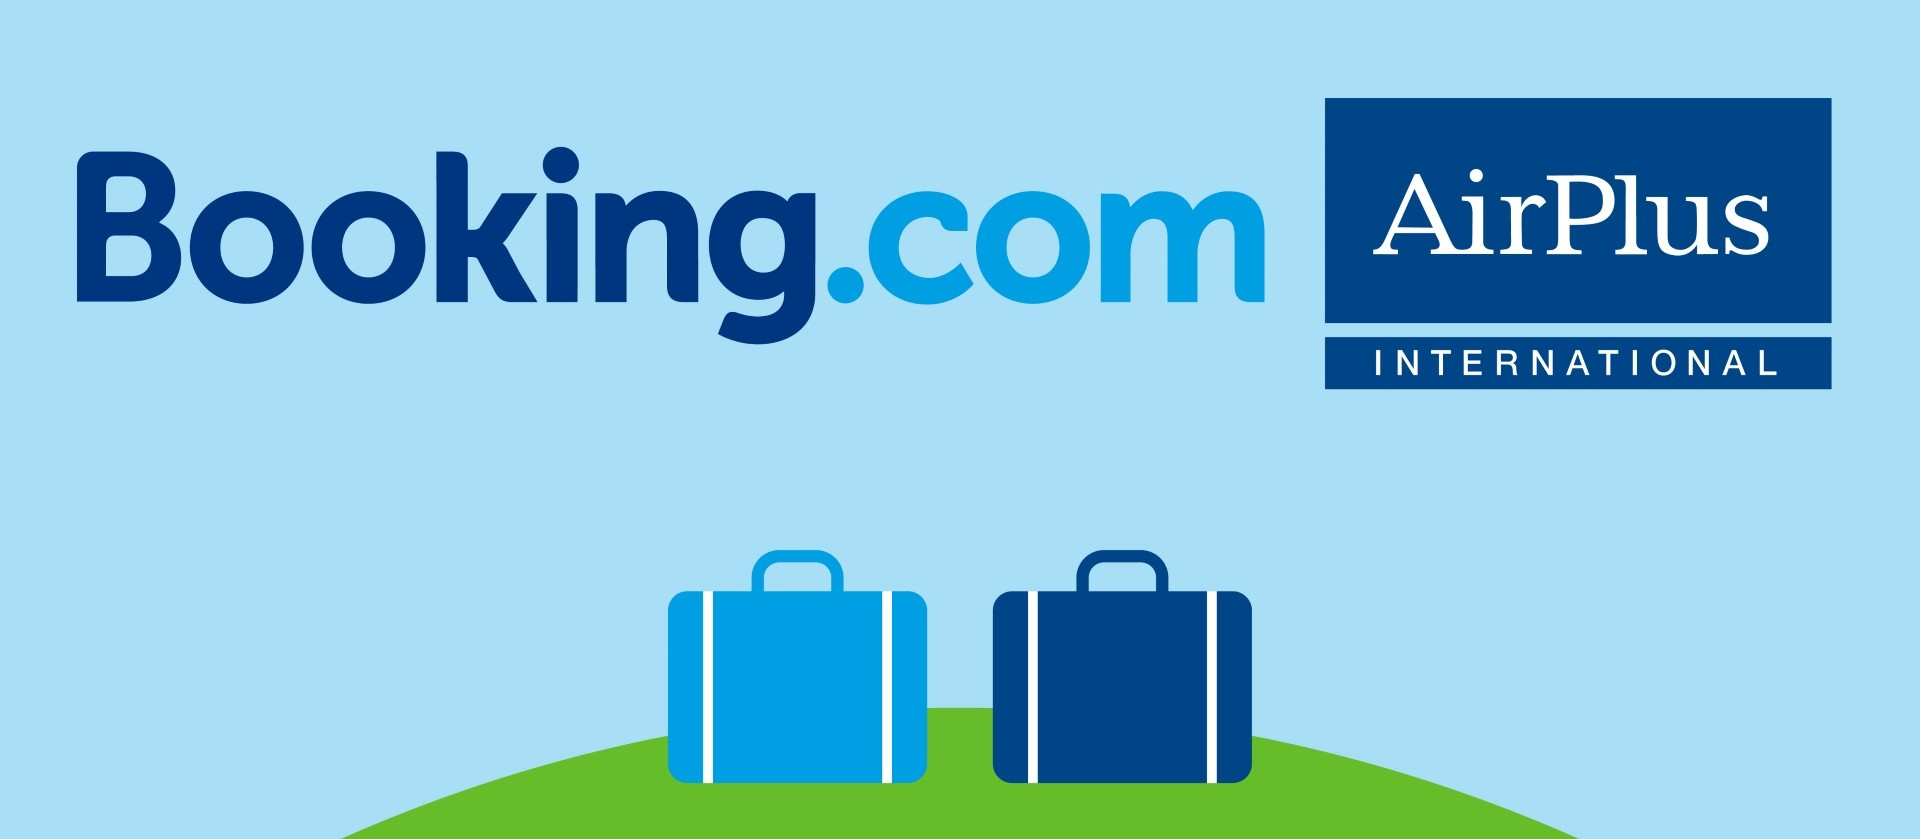 Booking.com s'associe à AirPlus